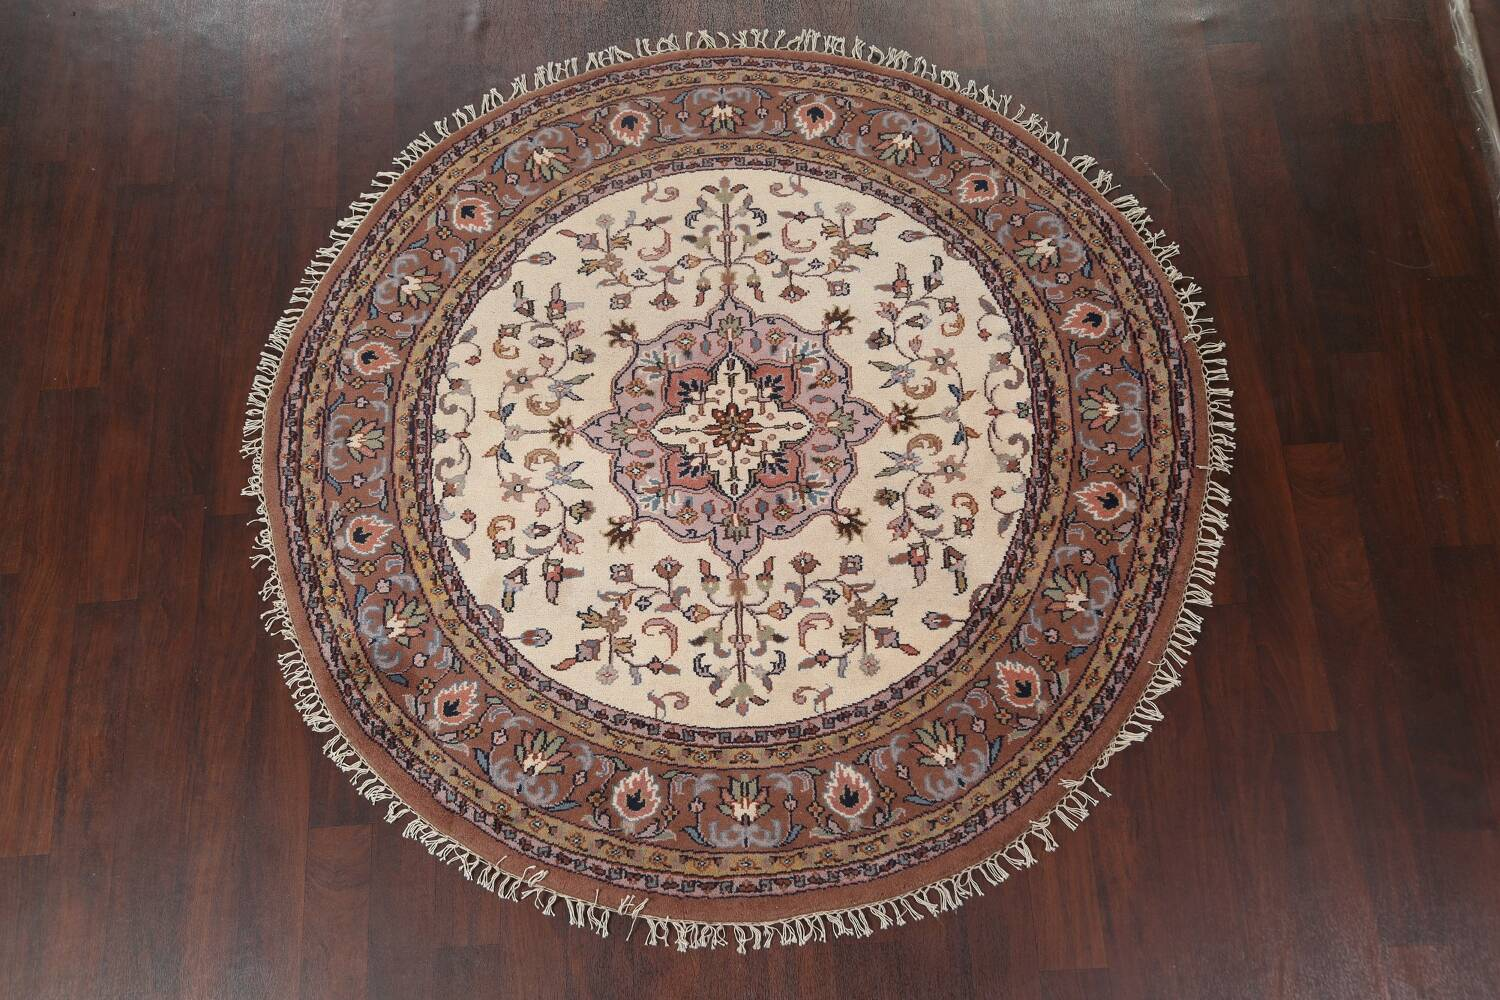 Hand-Knotted Kashan Round Area Rug 7x7 image 2